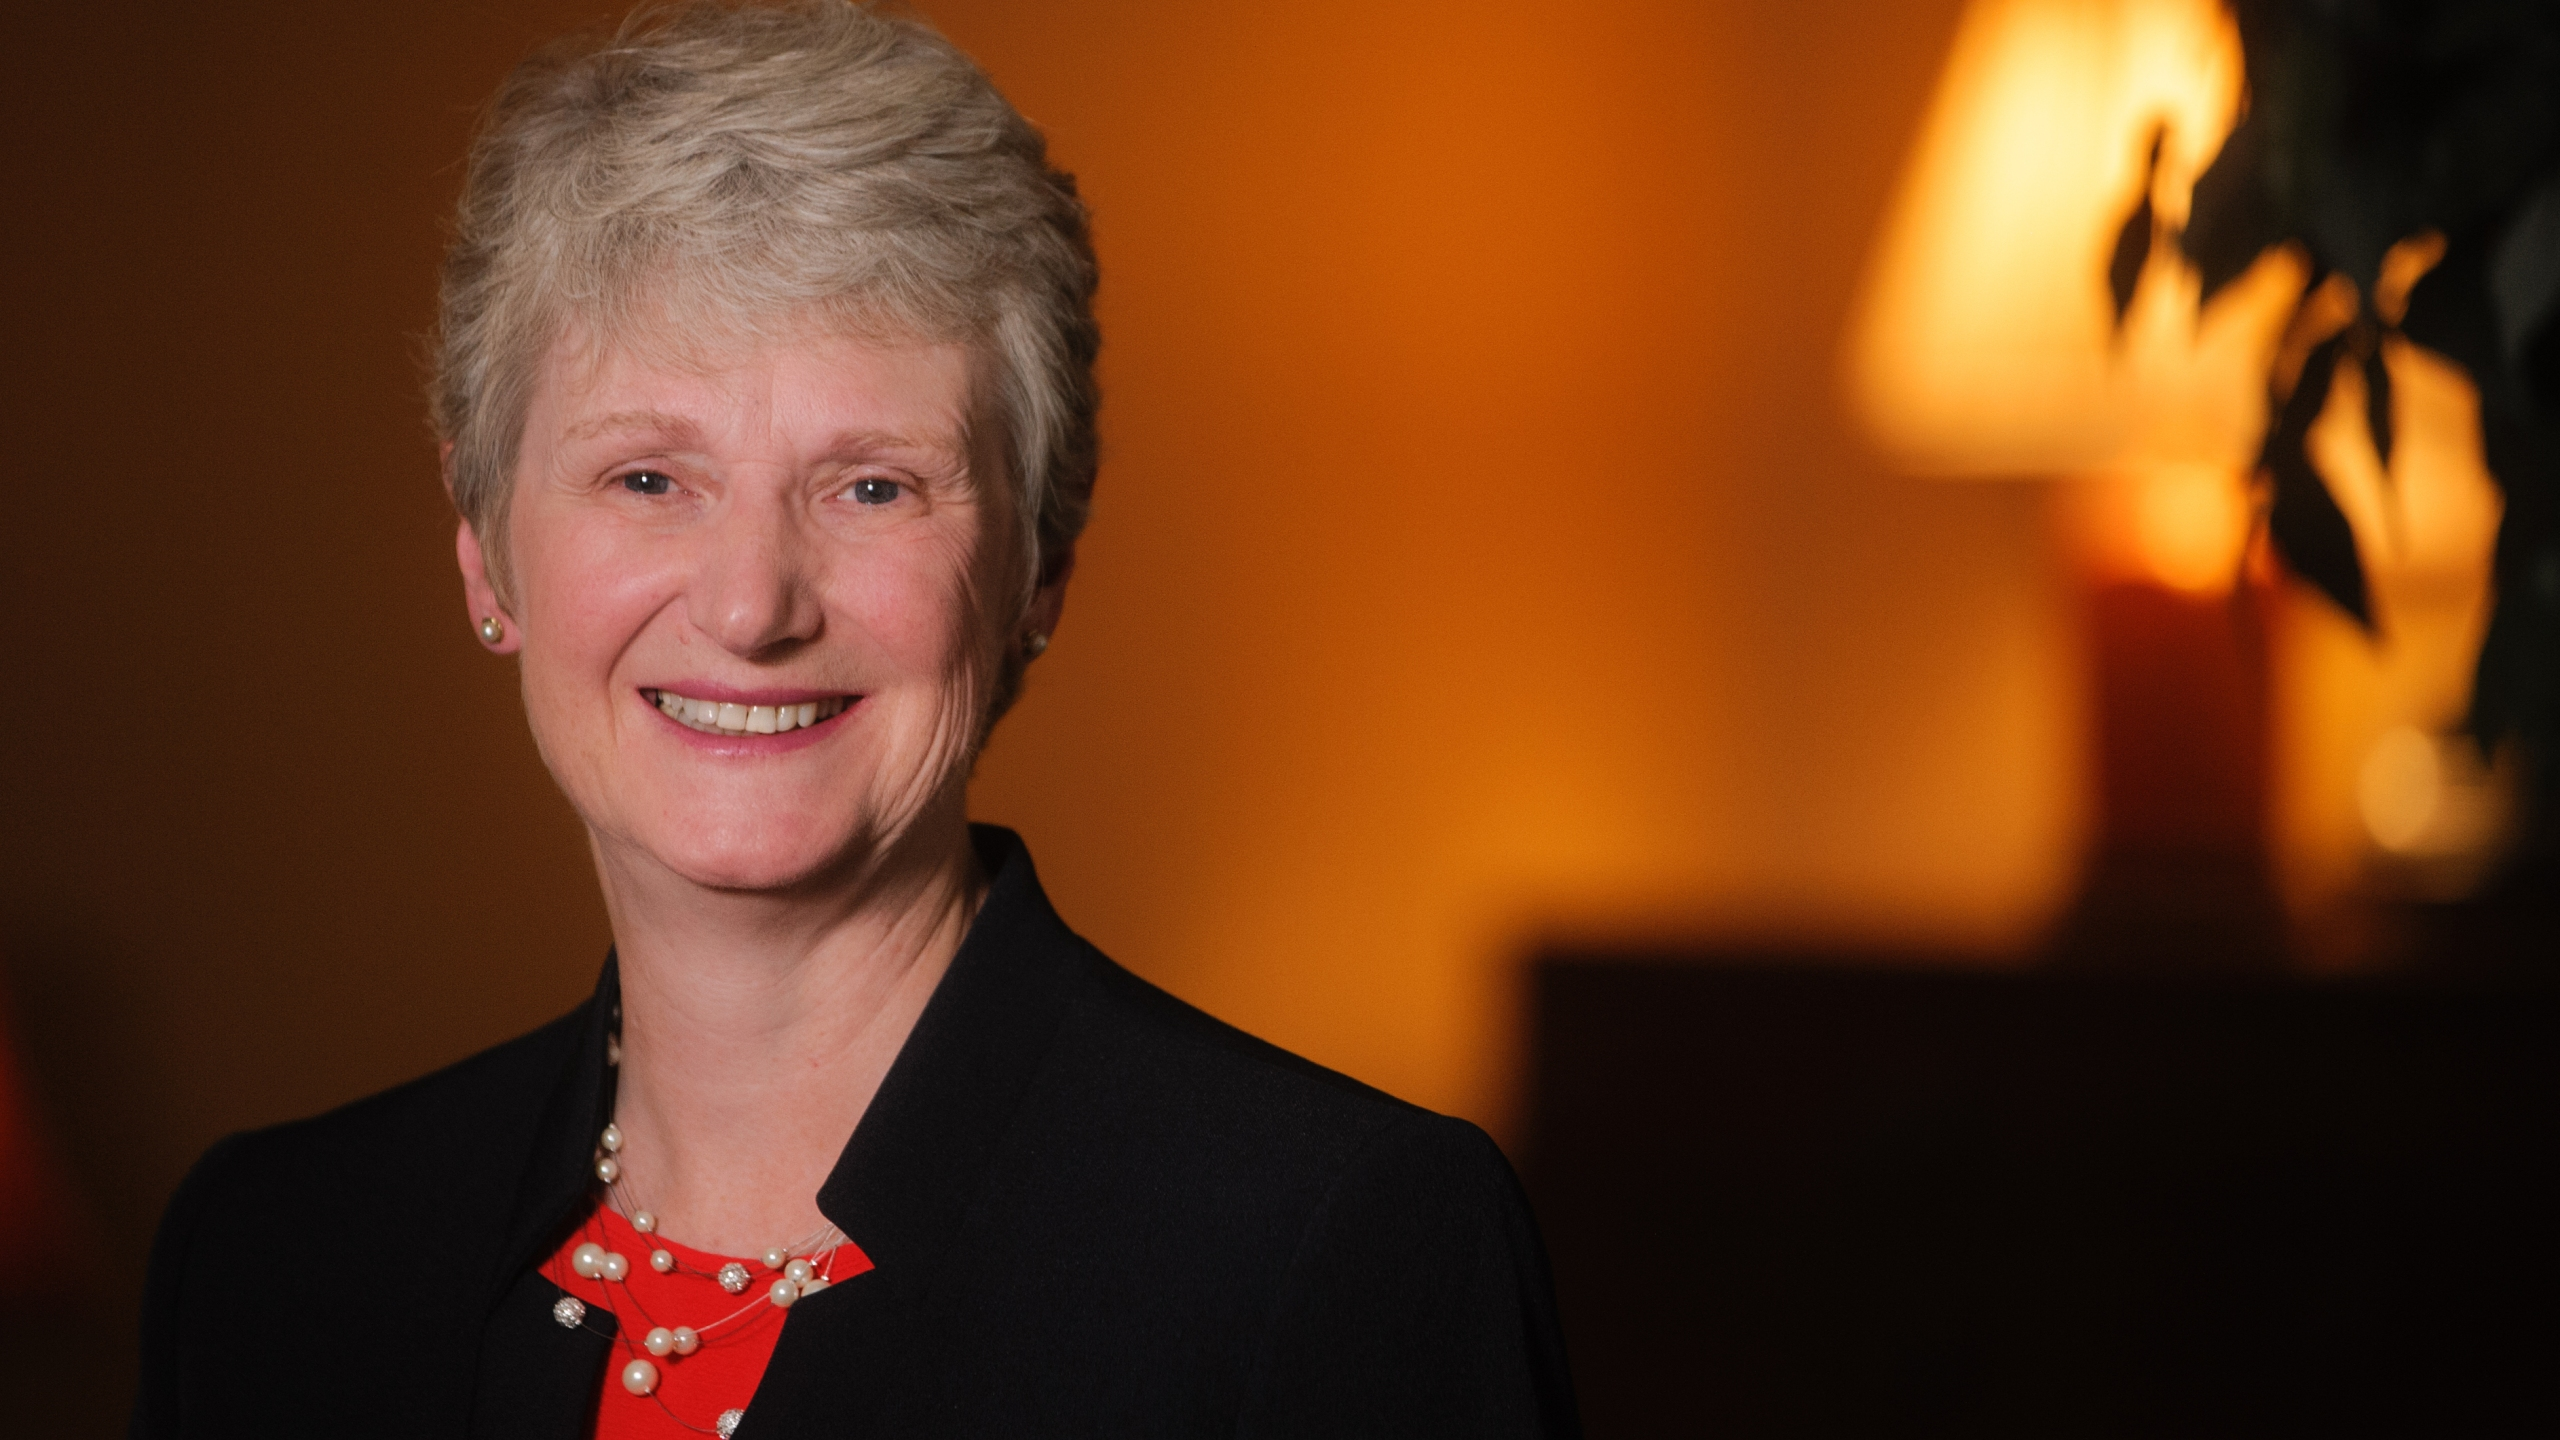 Dr. Alison Morrison-Shetlar will become president of the University of Lynchburg in July 2020. (Photo: Courtesy University of Lynchburg)